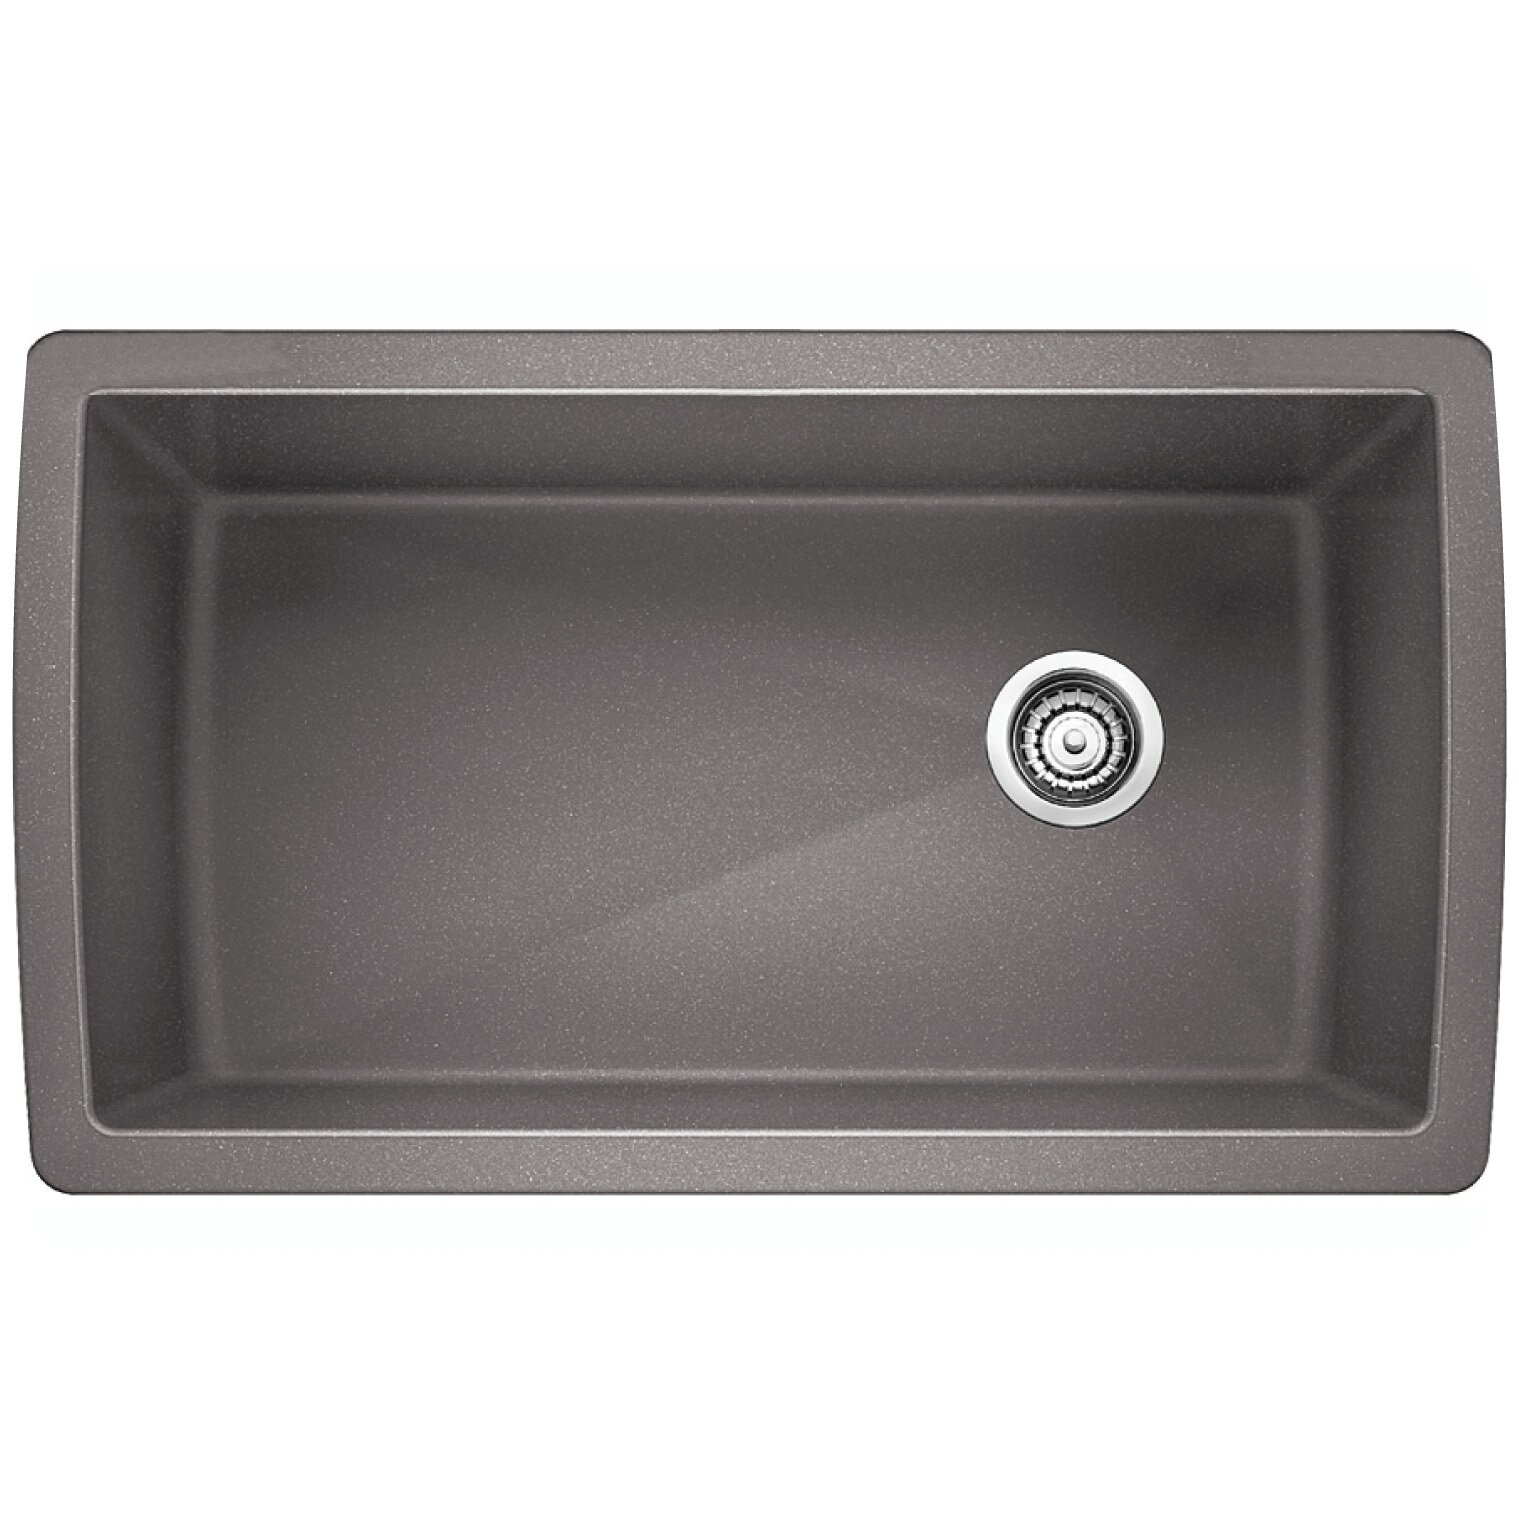 granite composite kitchen sinks c a~ white kitchen sink undermount QUICK VIEW White Diamond 33 5 18 5 Undermount Kitchen